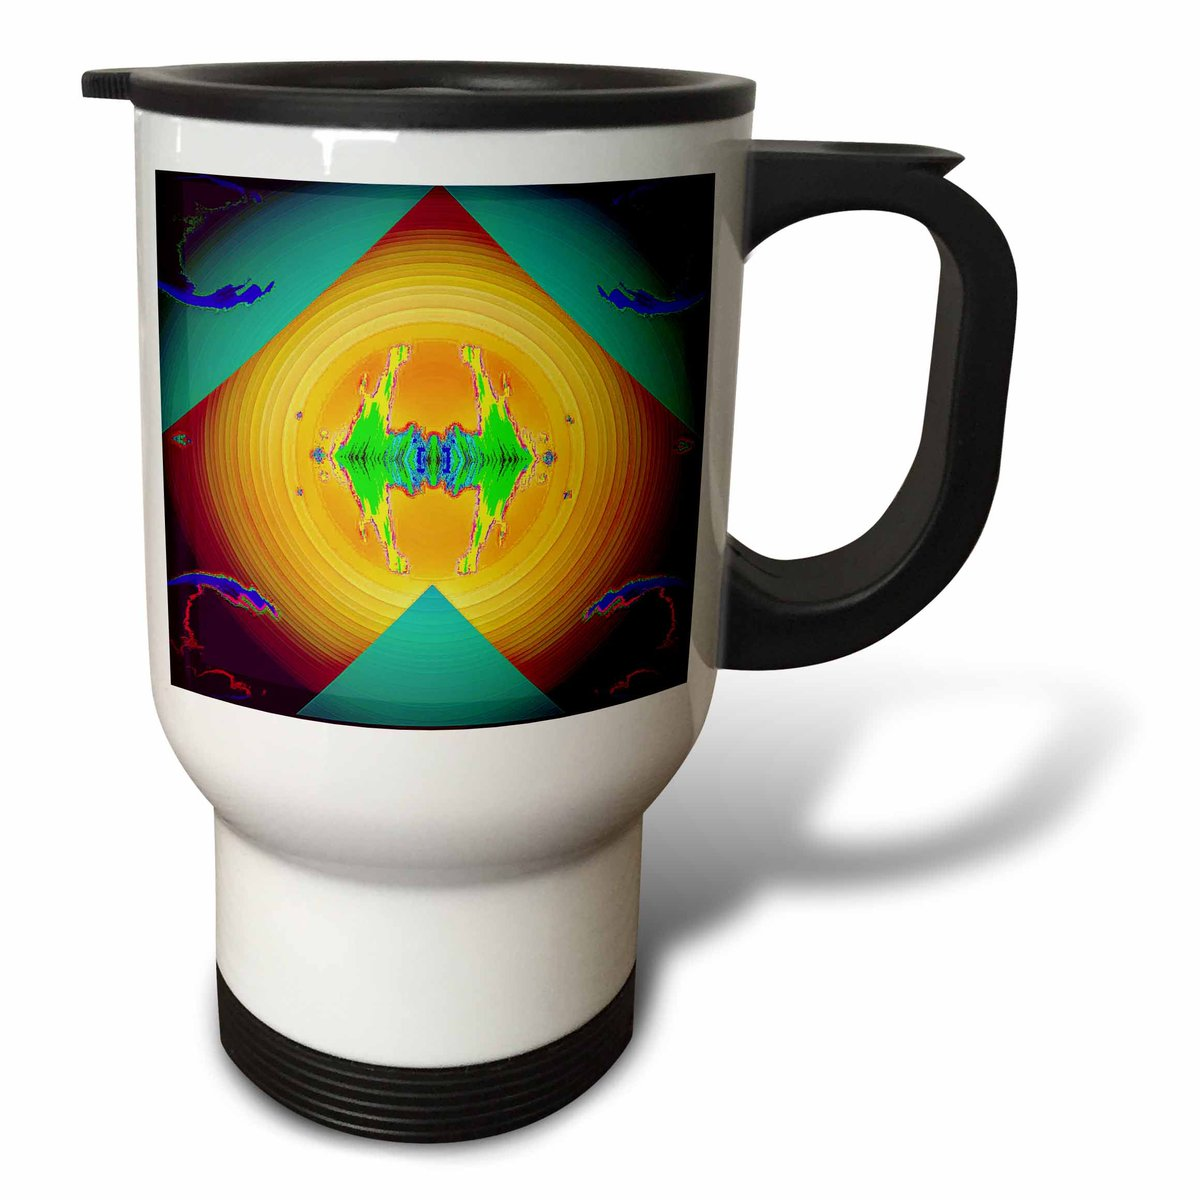 Travel Mugs BRAND NEW - HIGH QUALITY - HEAVY DUTY - NOT LIGHT WEIGHT DYLAN SEIBOLD - PHOTO ABSTRACTION - #Travel #Mug - Great #coffee #Gift Item ! https://buff.ly/2TgXcSo pic.twitter.com/cW1c93lQQk